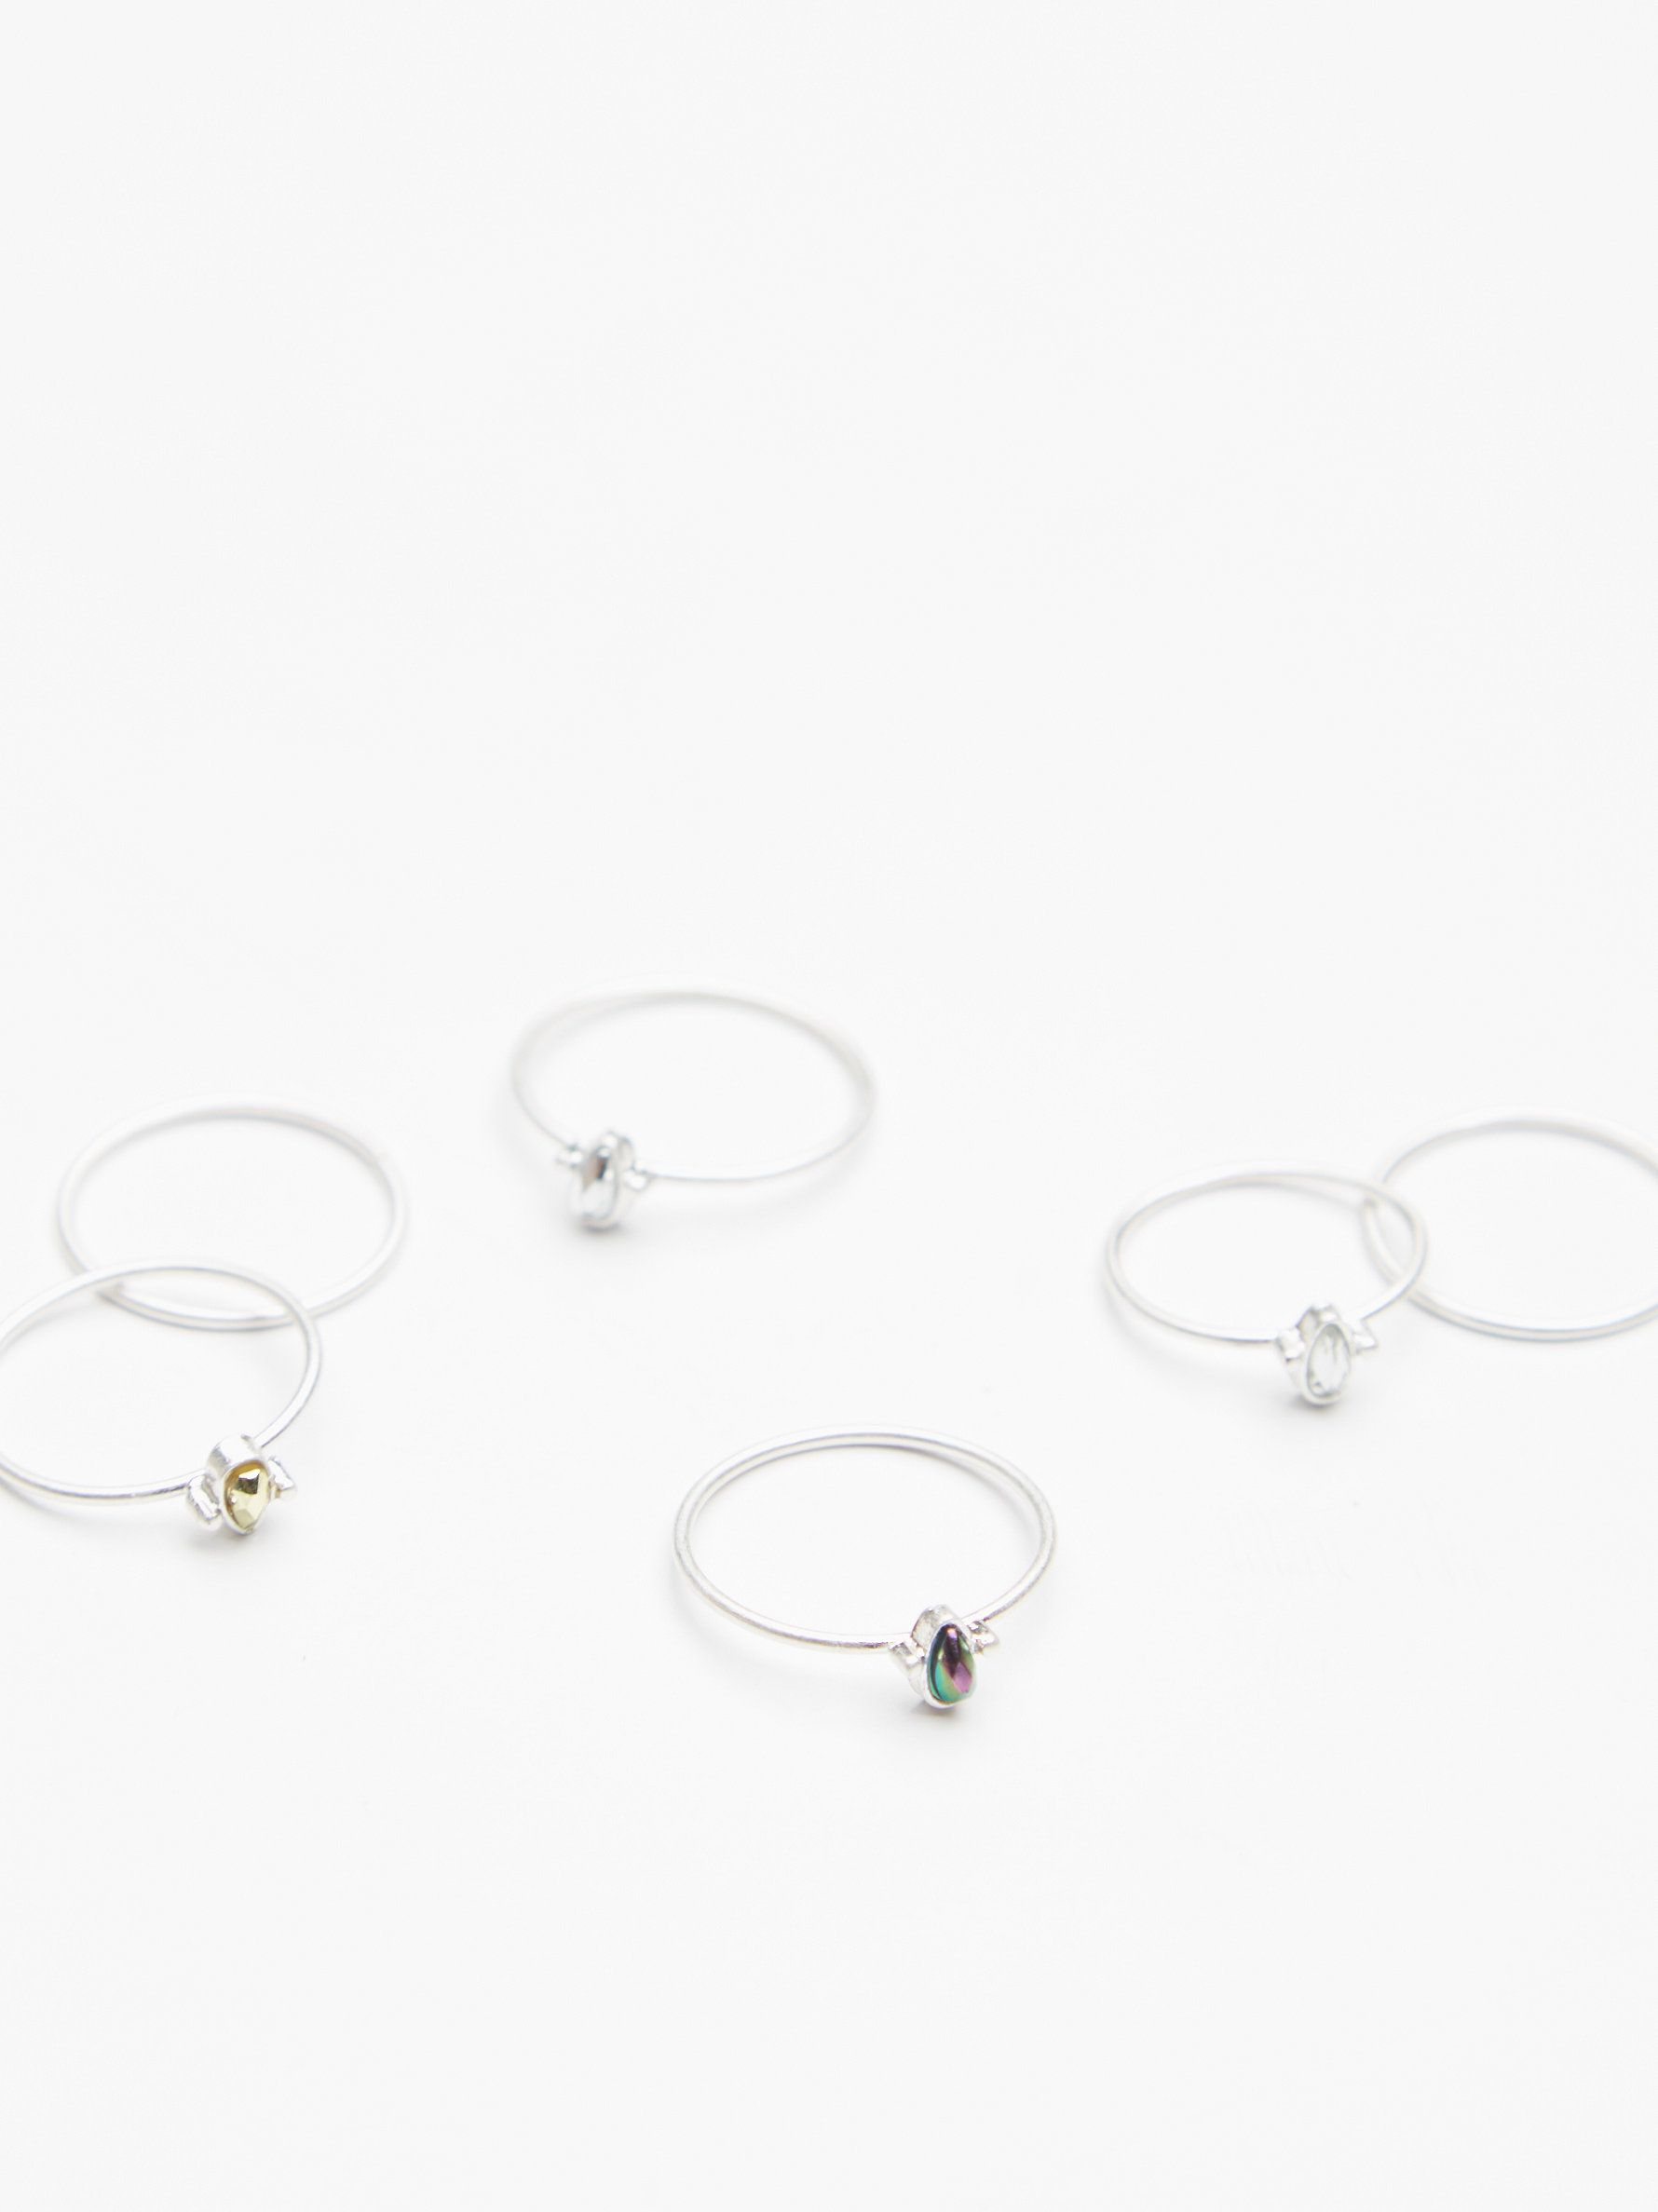 Teeny Tiny Iridescent Ring Set | Set of 6 mix-and-match metal rings featuring beautiful glass stone accents. Wear one or wear them all!